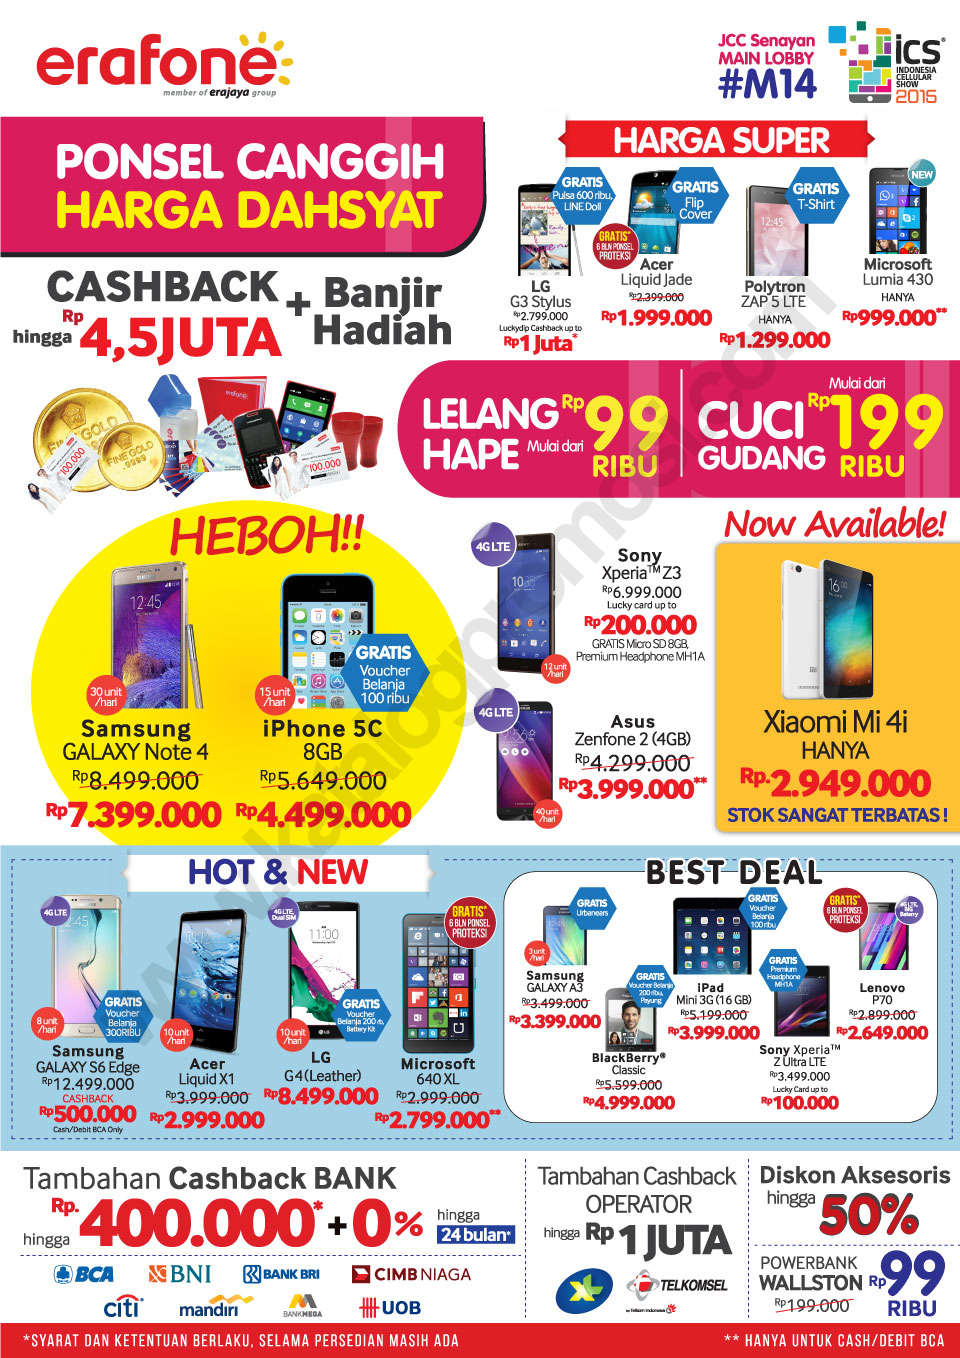 ERAFONE PROMO DI INDONESIA CELLULAR SHOW 2015